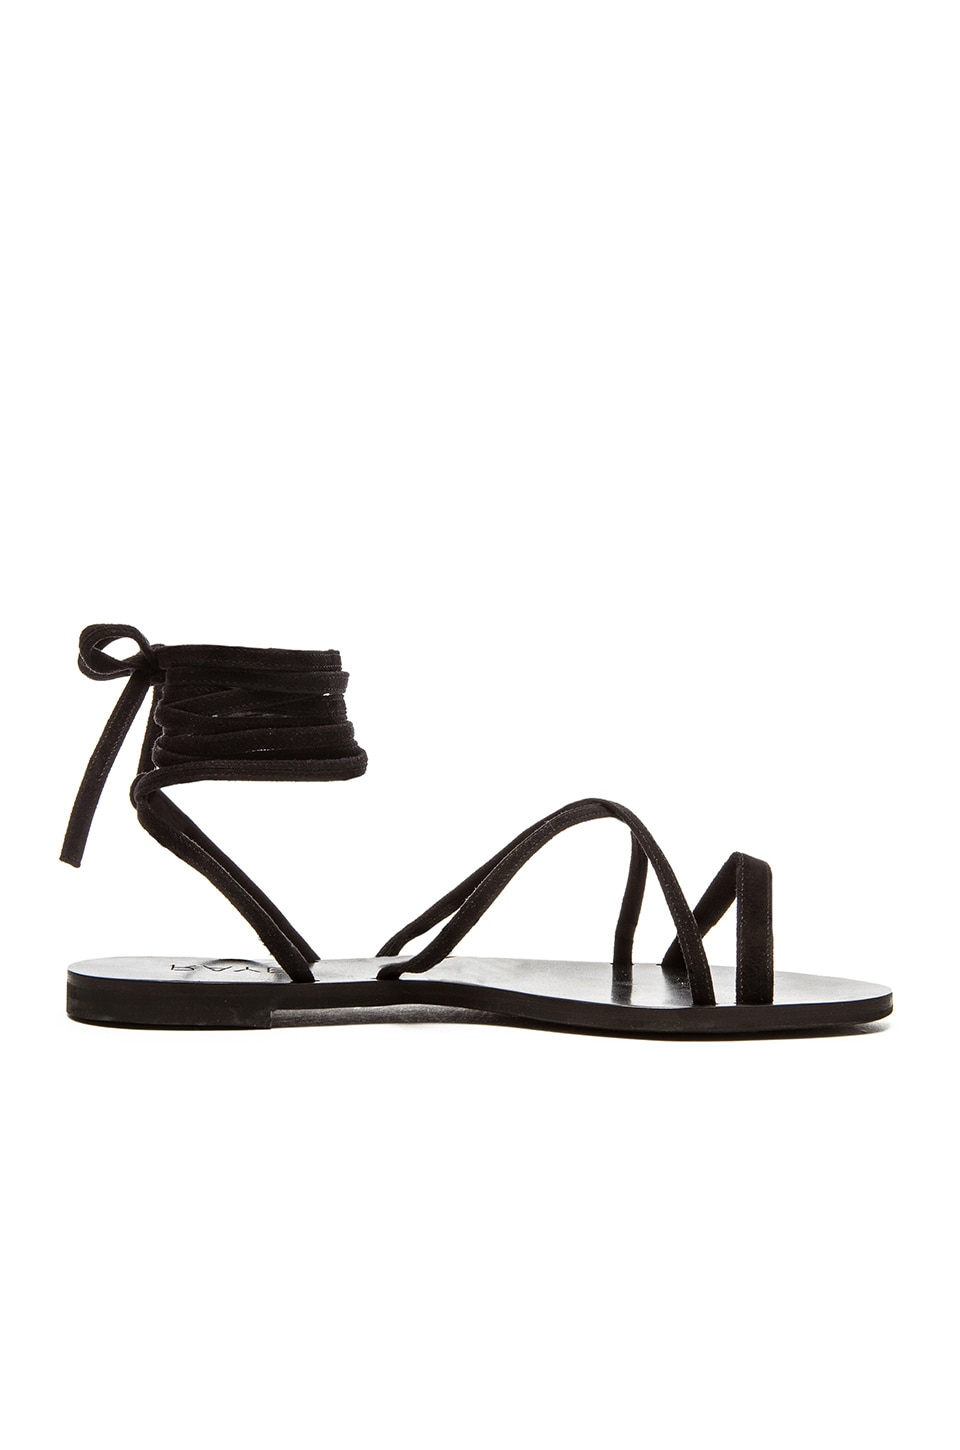 RAYE Sadie Gladiator Sandal in Black